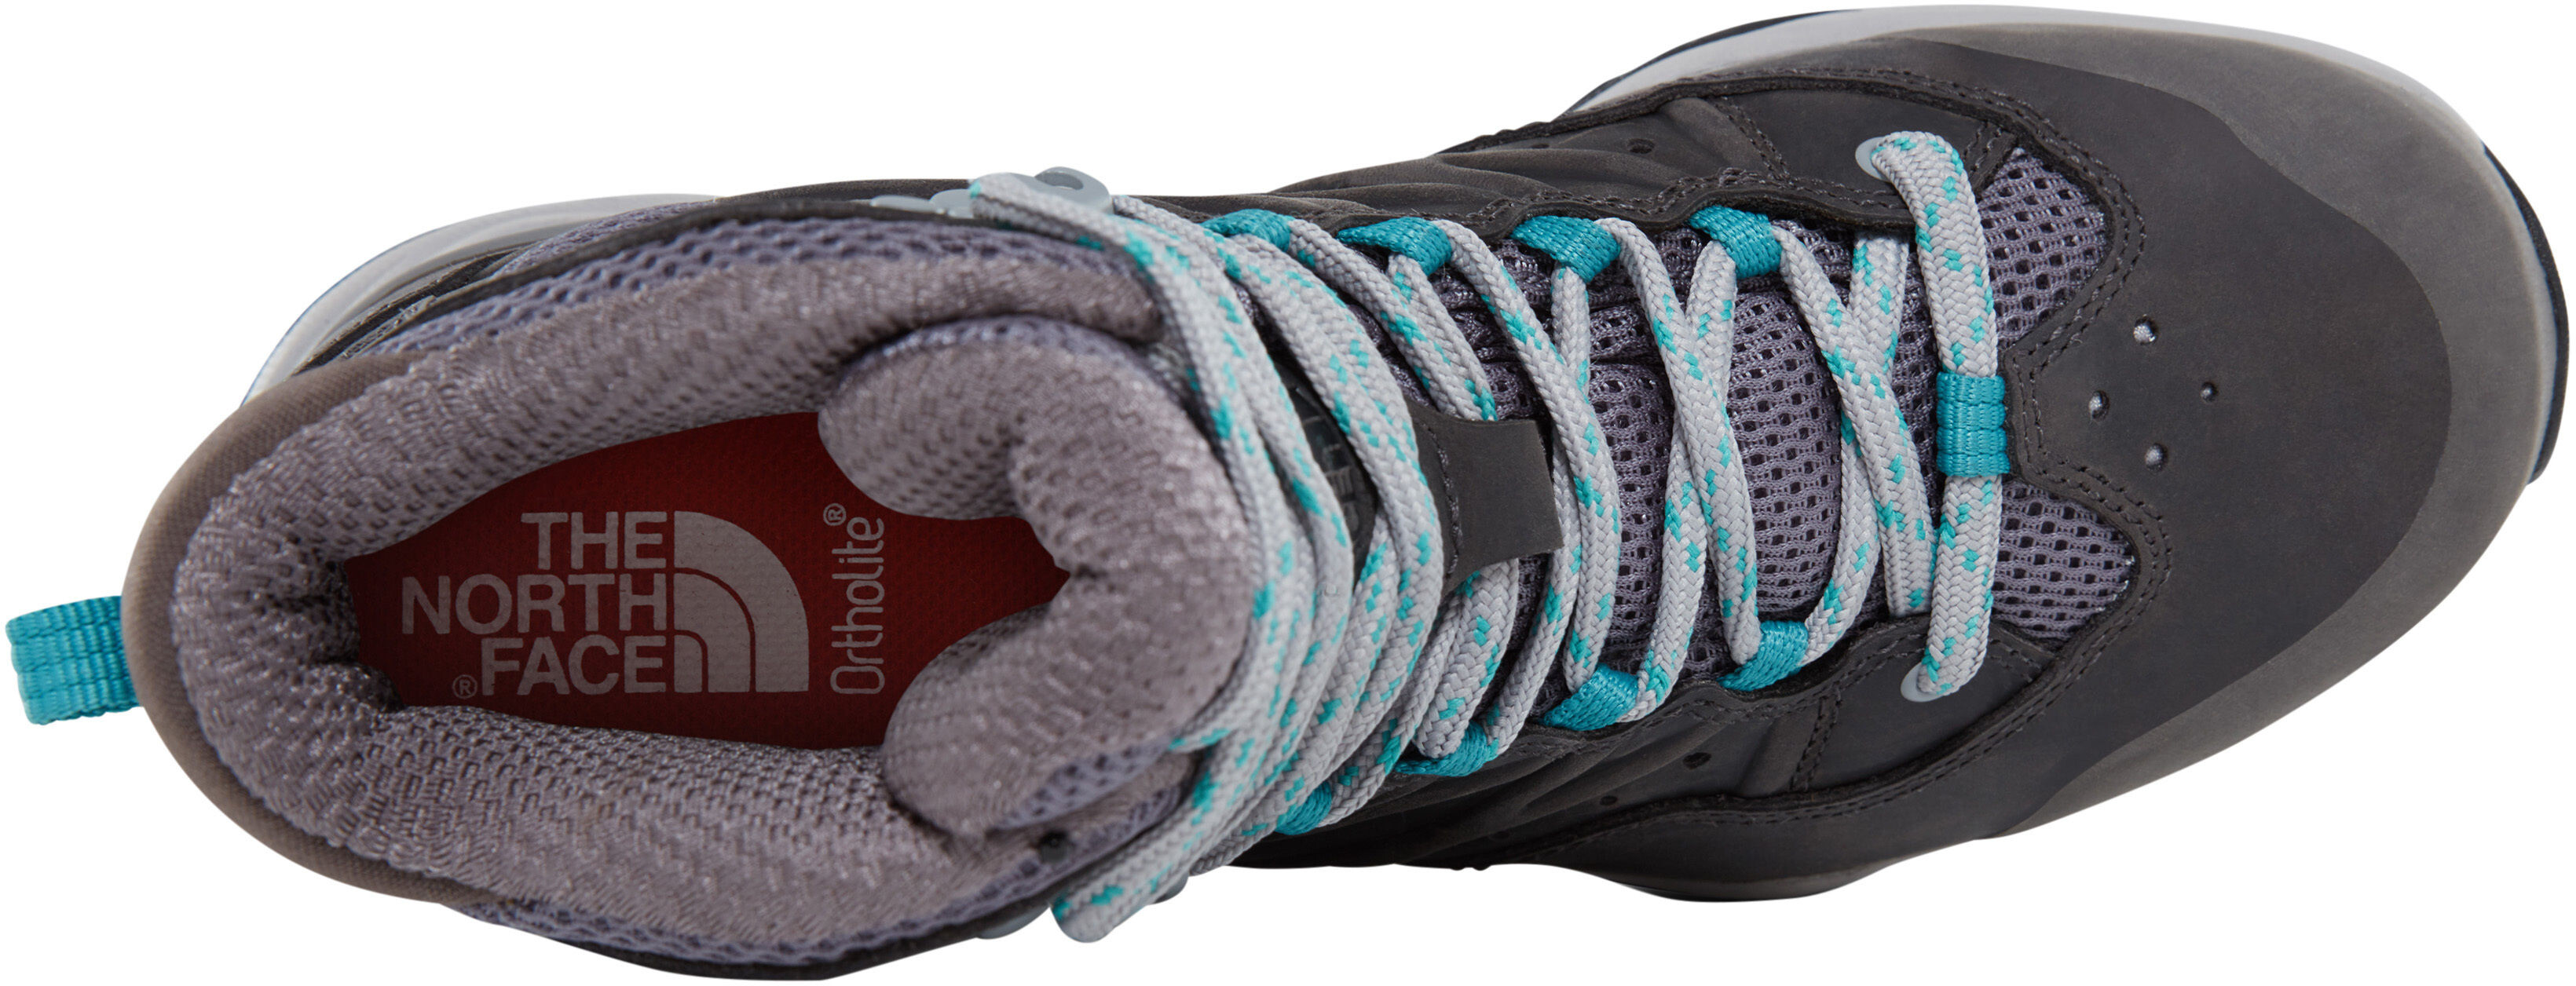 997eebc02 The North Face Hedgehog Hike II Mid GTX Shoes Women q-silver grey/porcelain  green